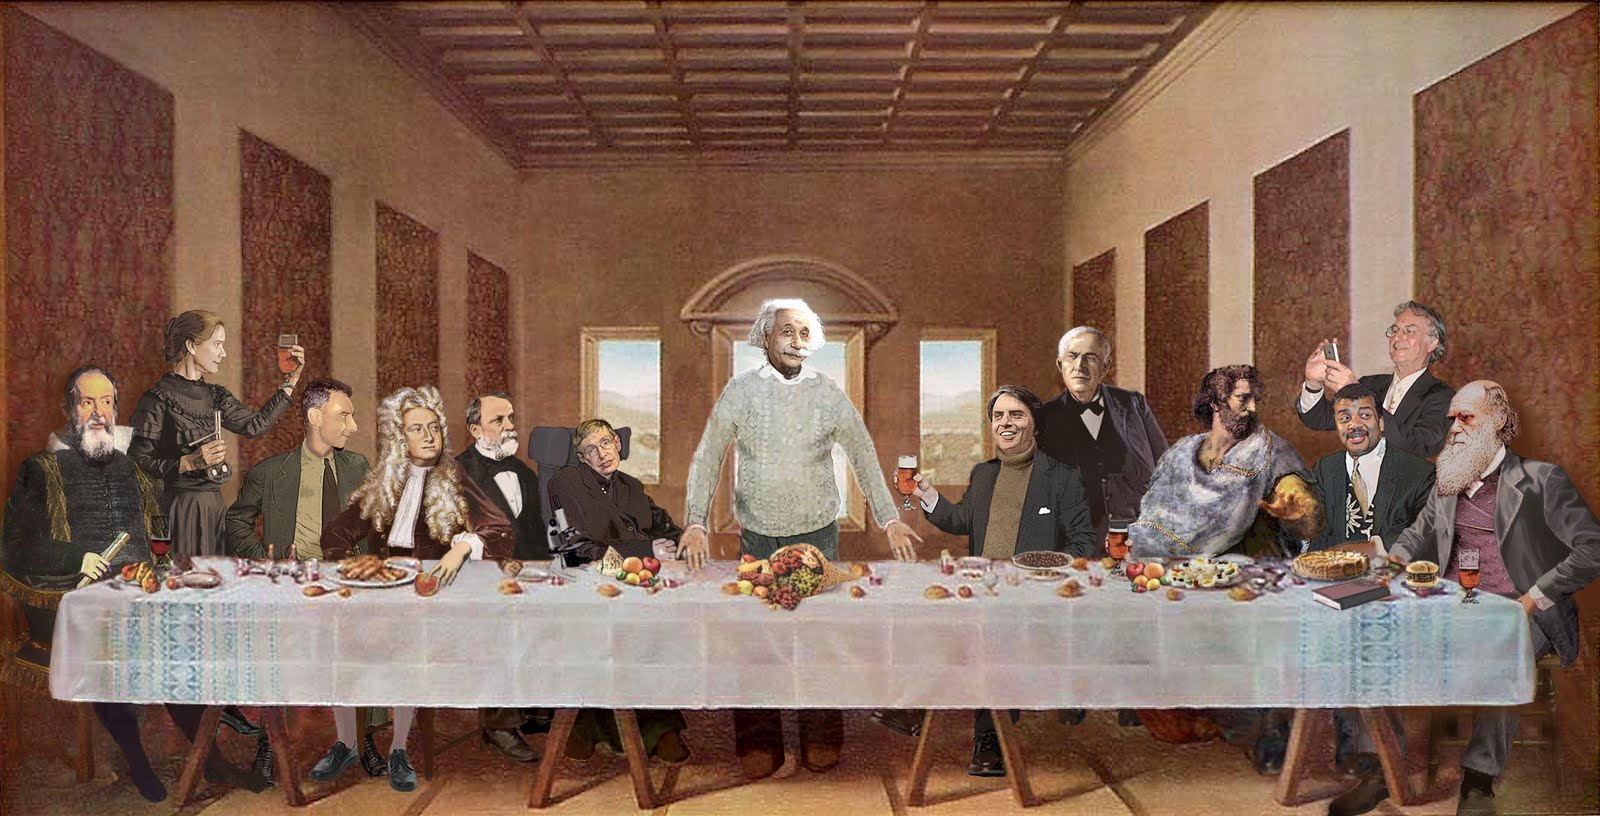 Resultado de imagen para 12 MEN MOON WALKERS LAST SUPPER